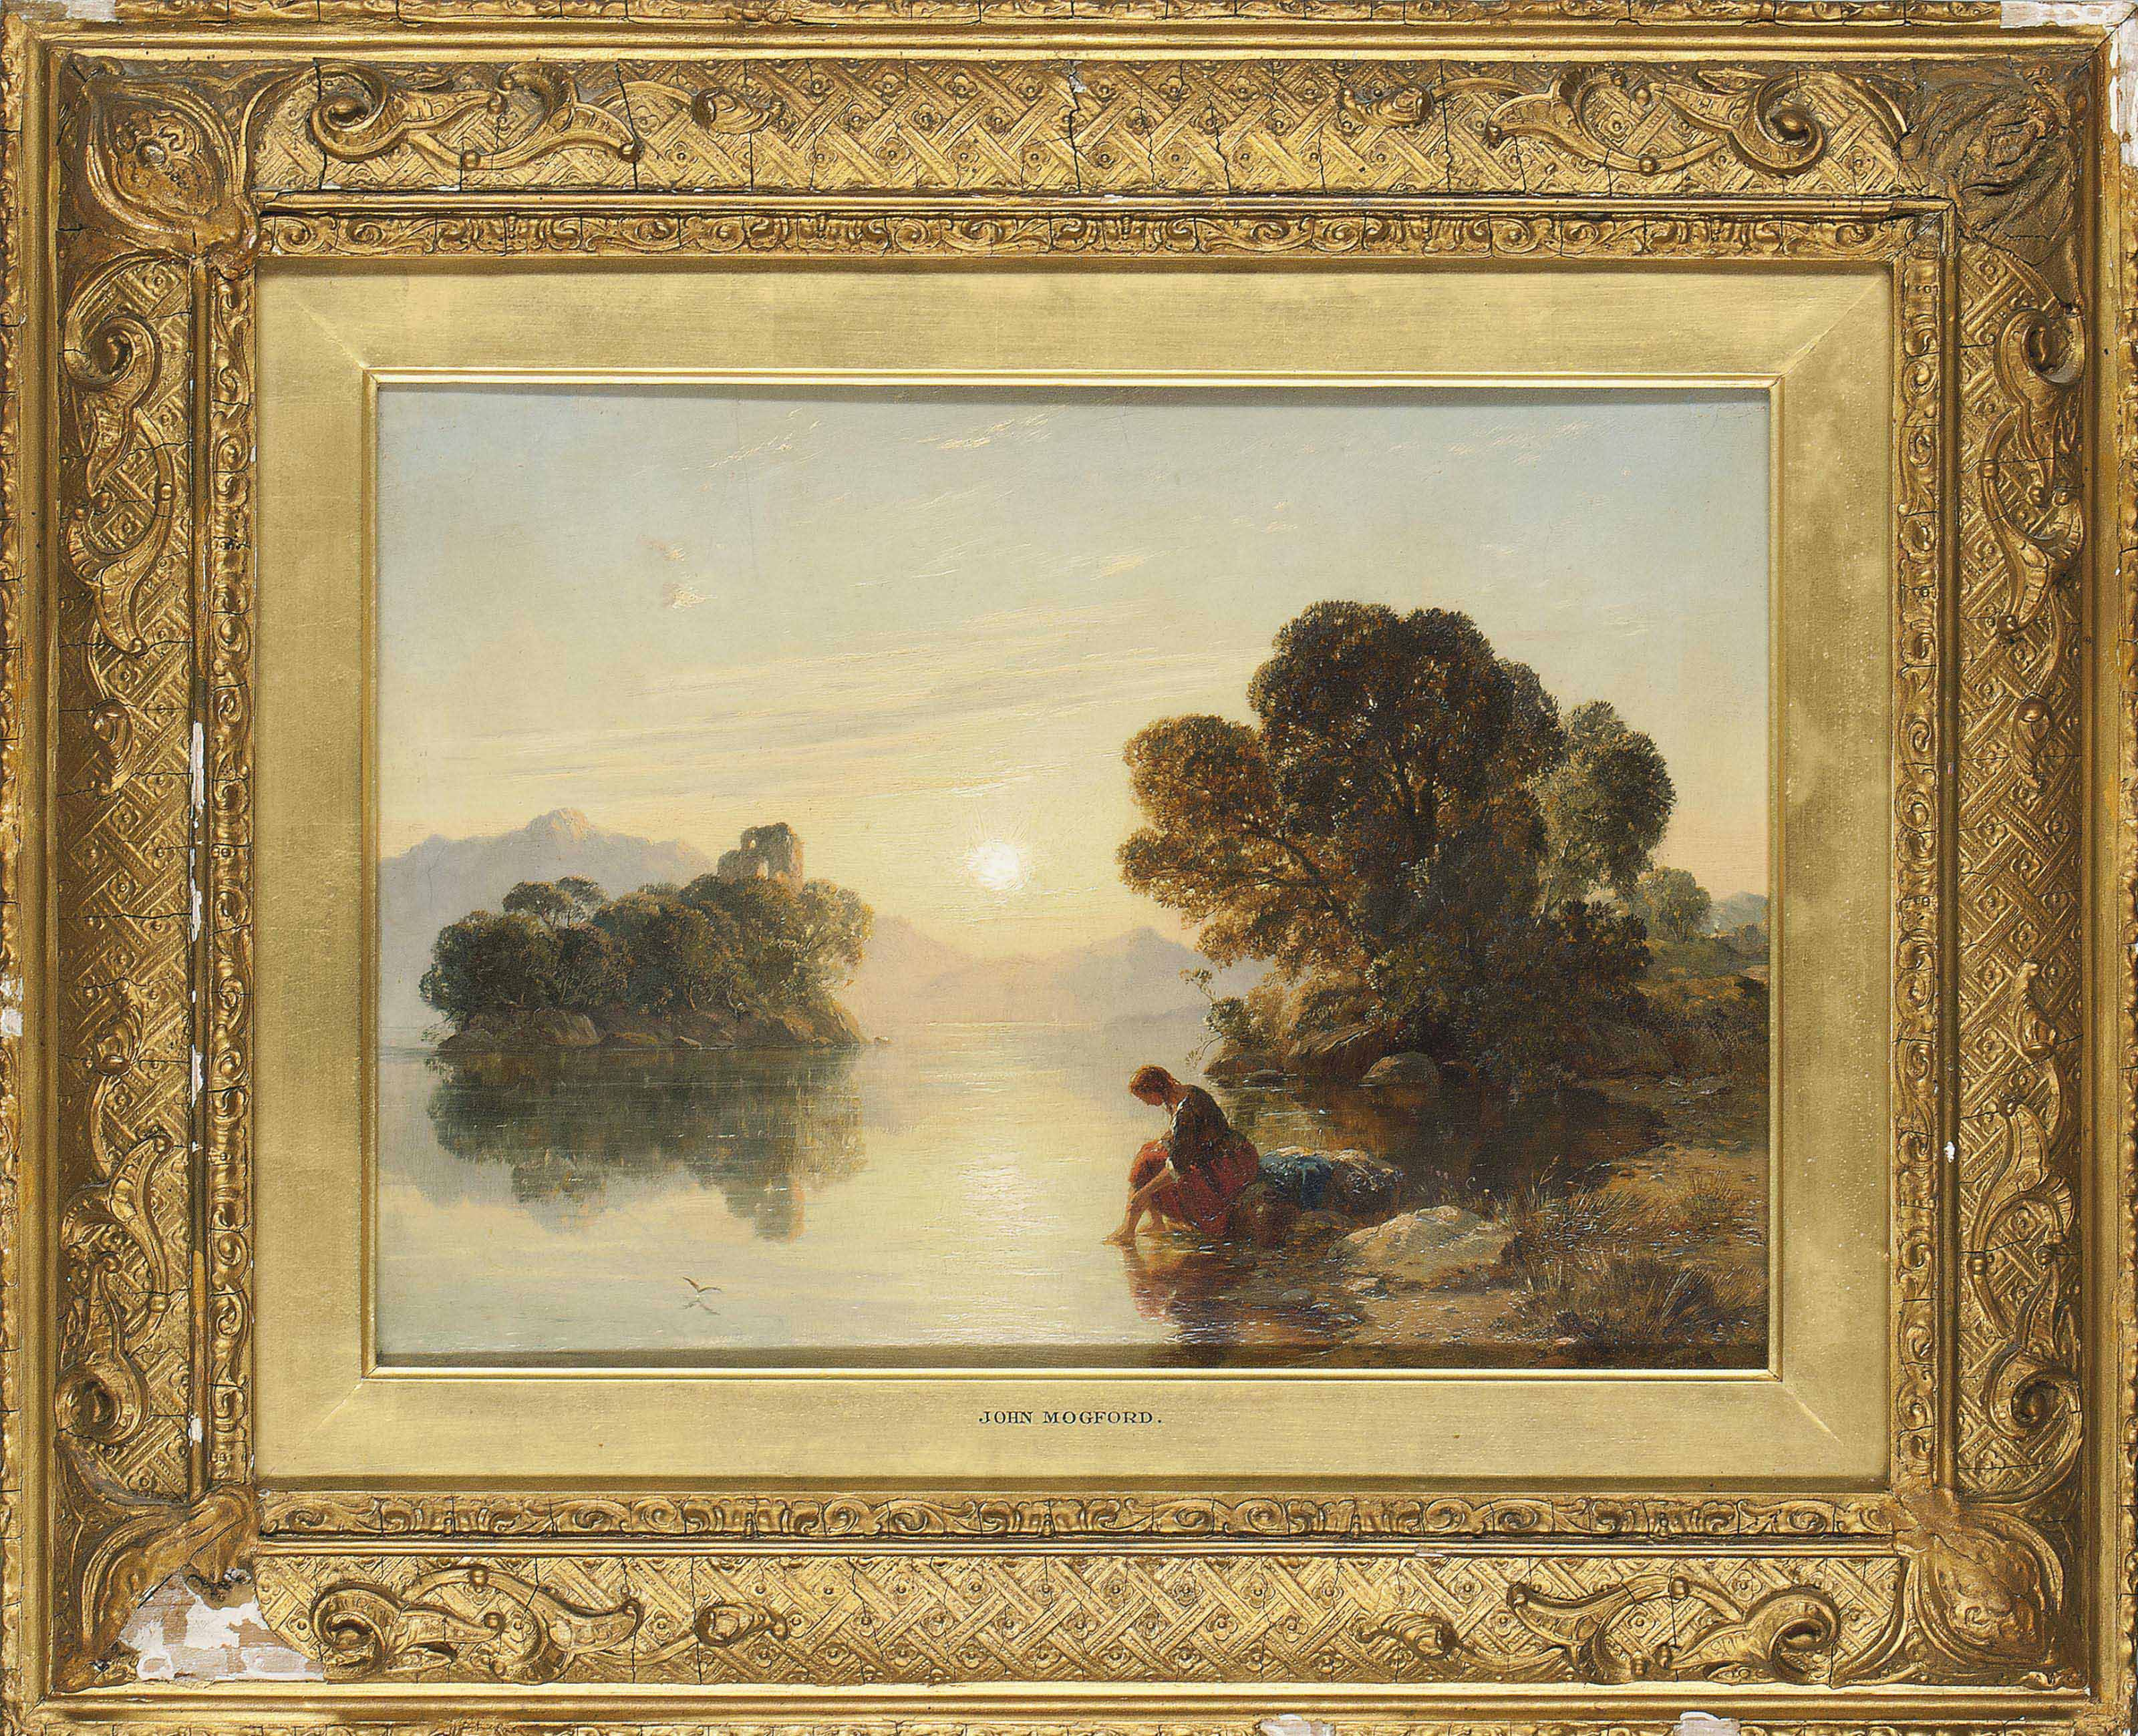 A young girl washing by a sunlit lake